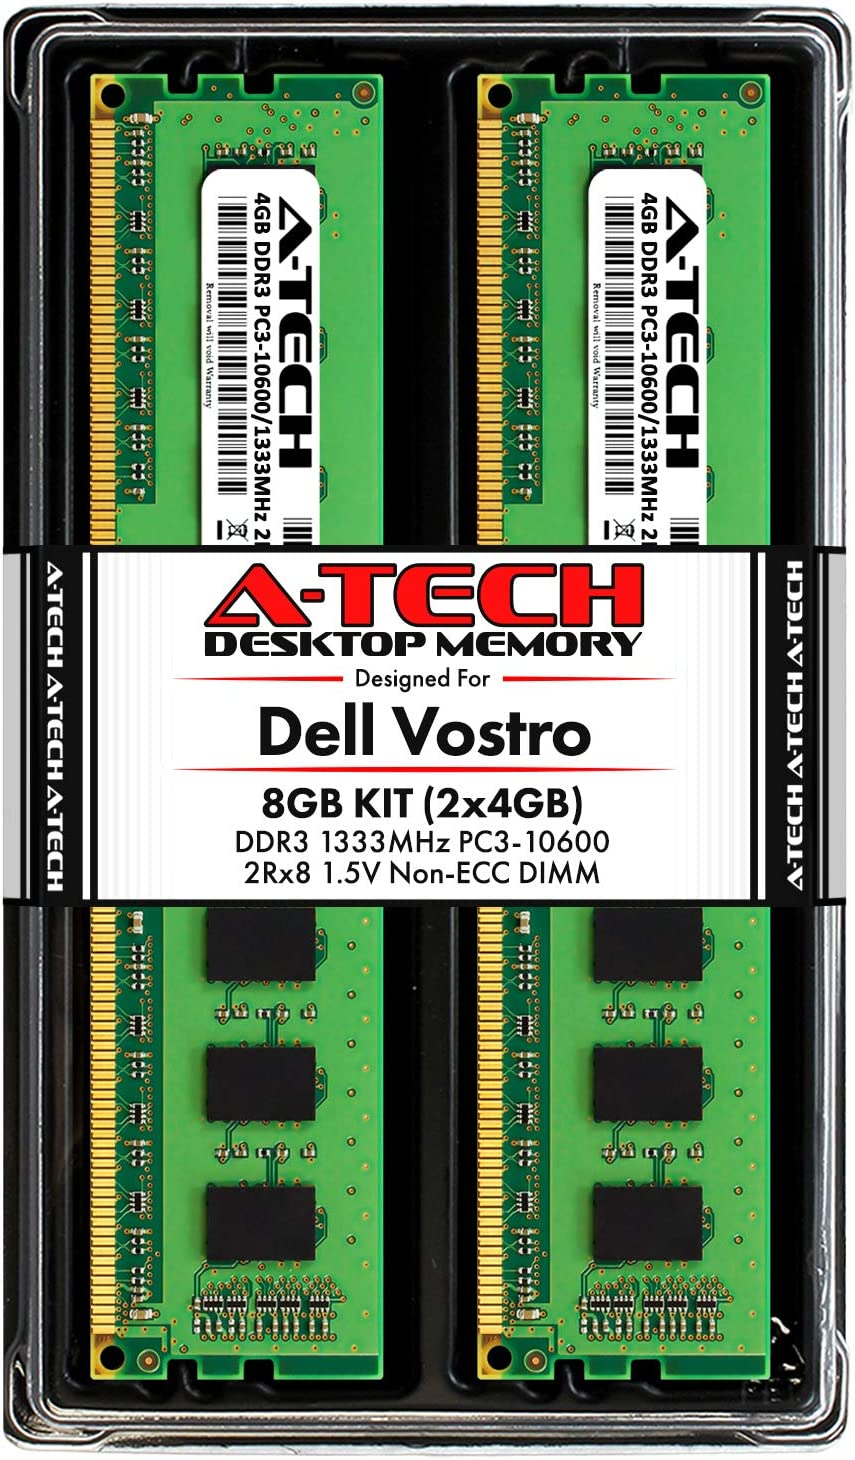 A-Tech 8GB (2 x 4GB) RAM for Dell Vostro 460, 430, 260, 260s | DDR3 1333MHz PC3-10600 240-Pin Non-ECC DIMM Memory Upgrade Kit